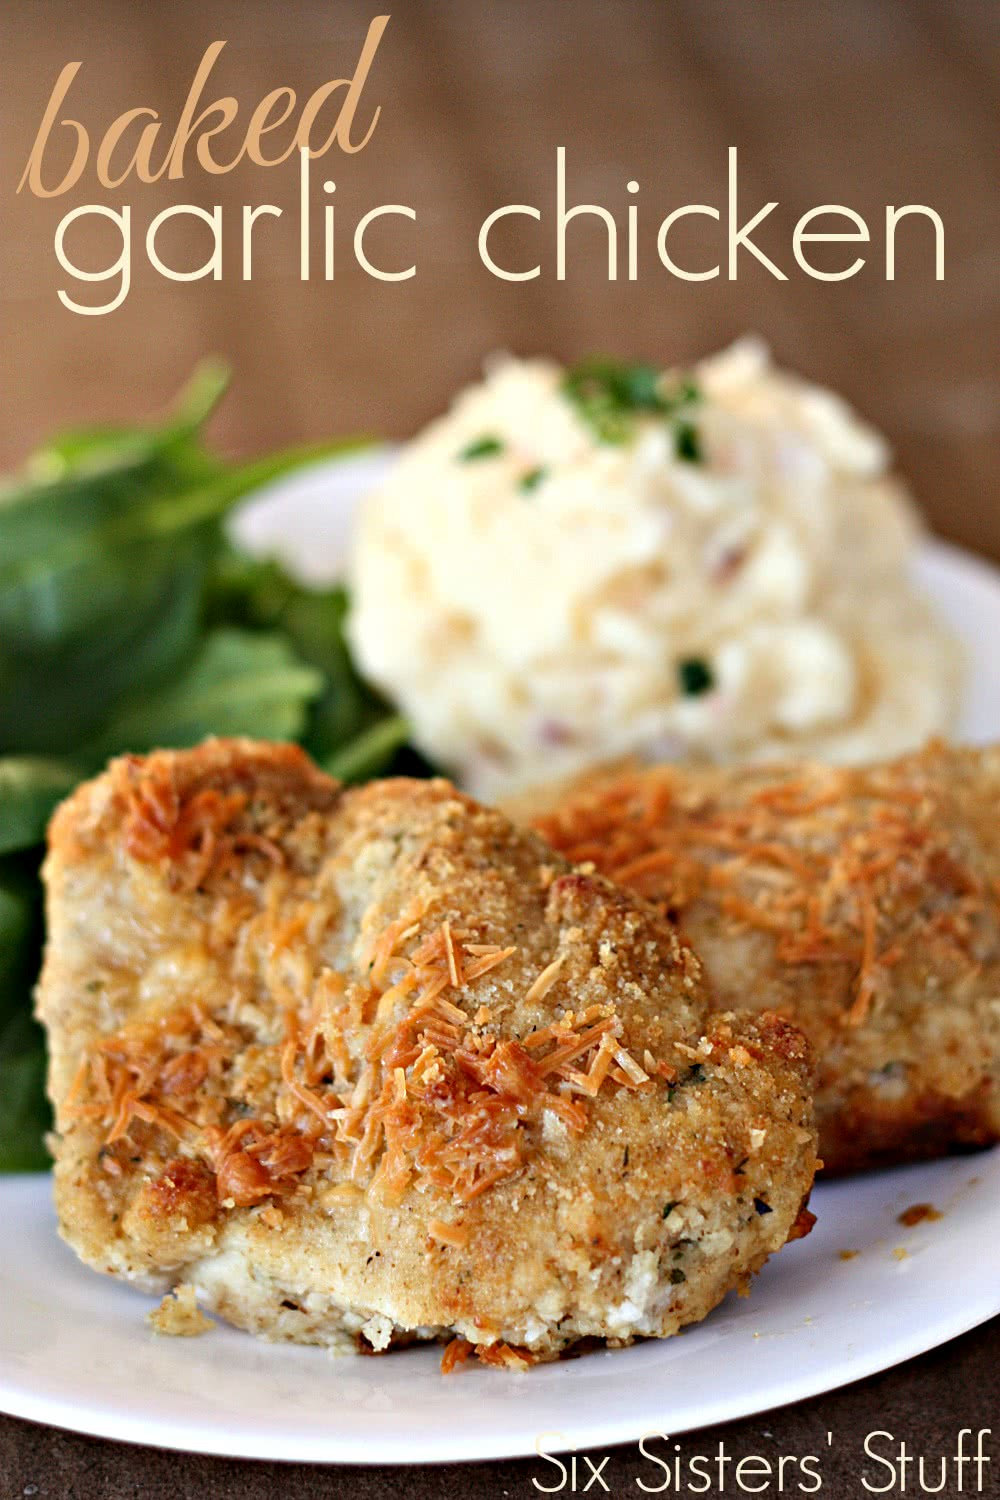 baked garlic chicken